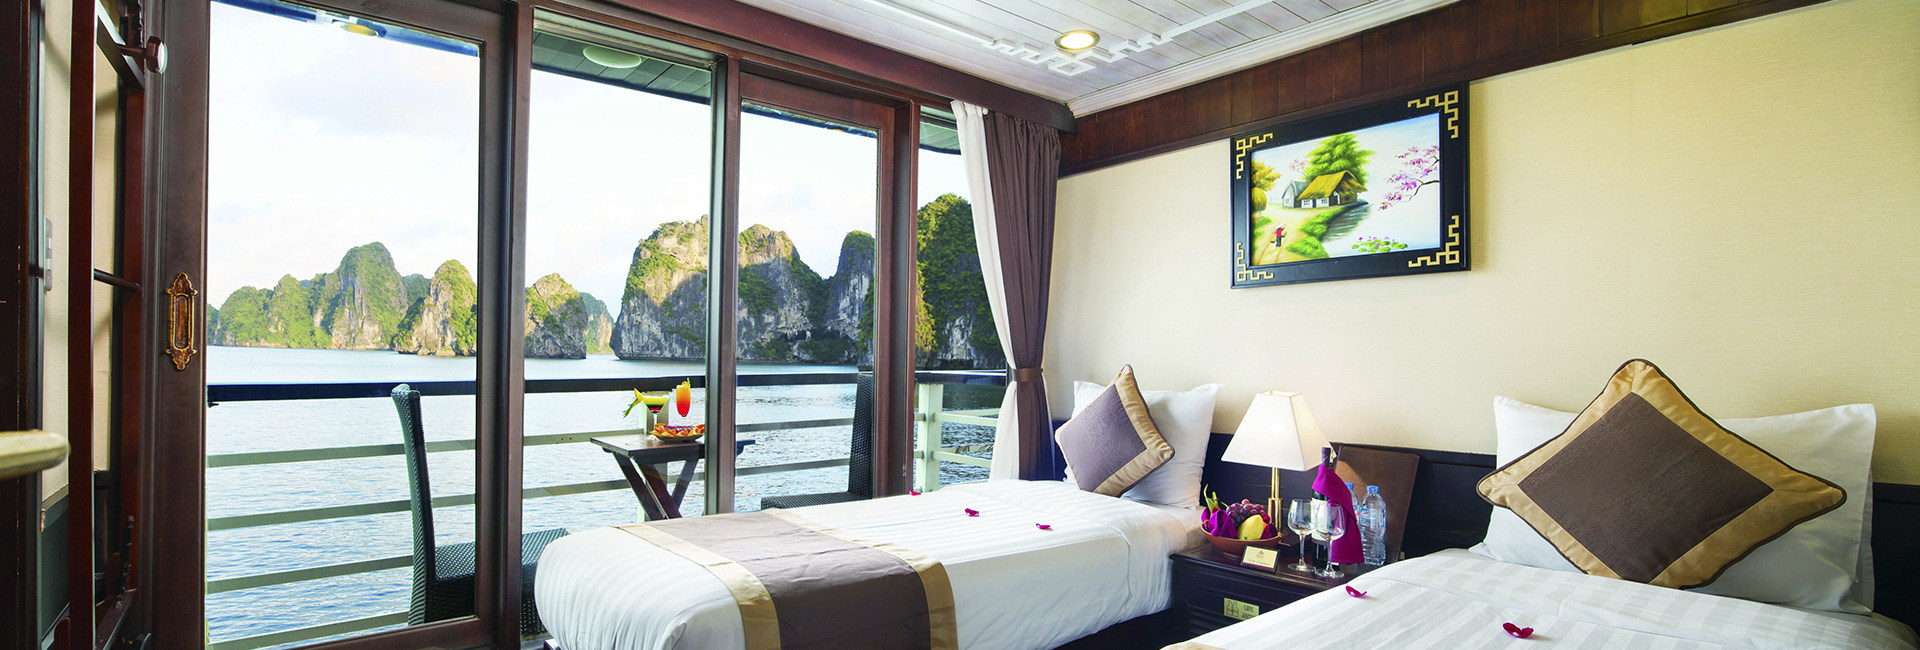 Apricot Cruise Halong Bay banner